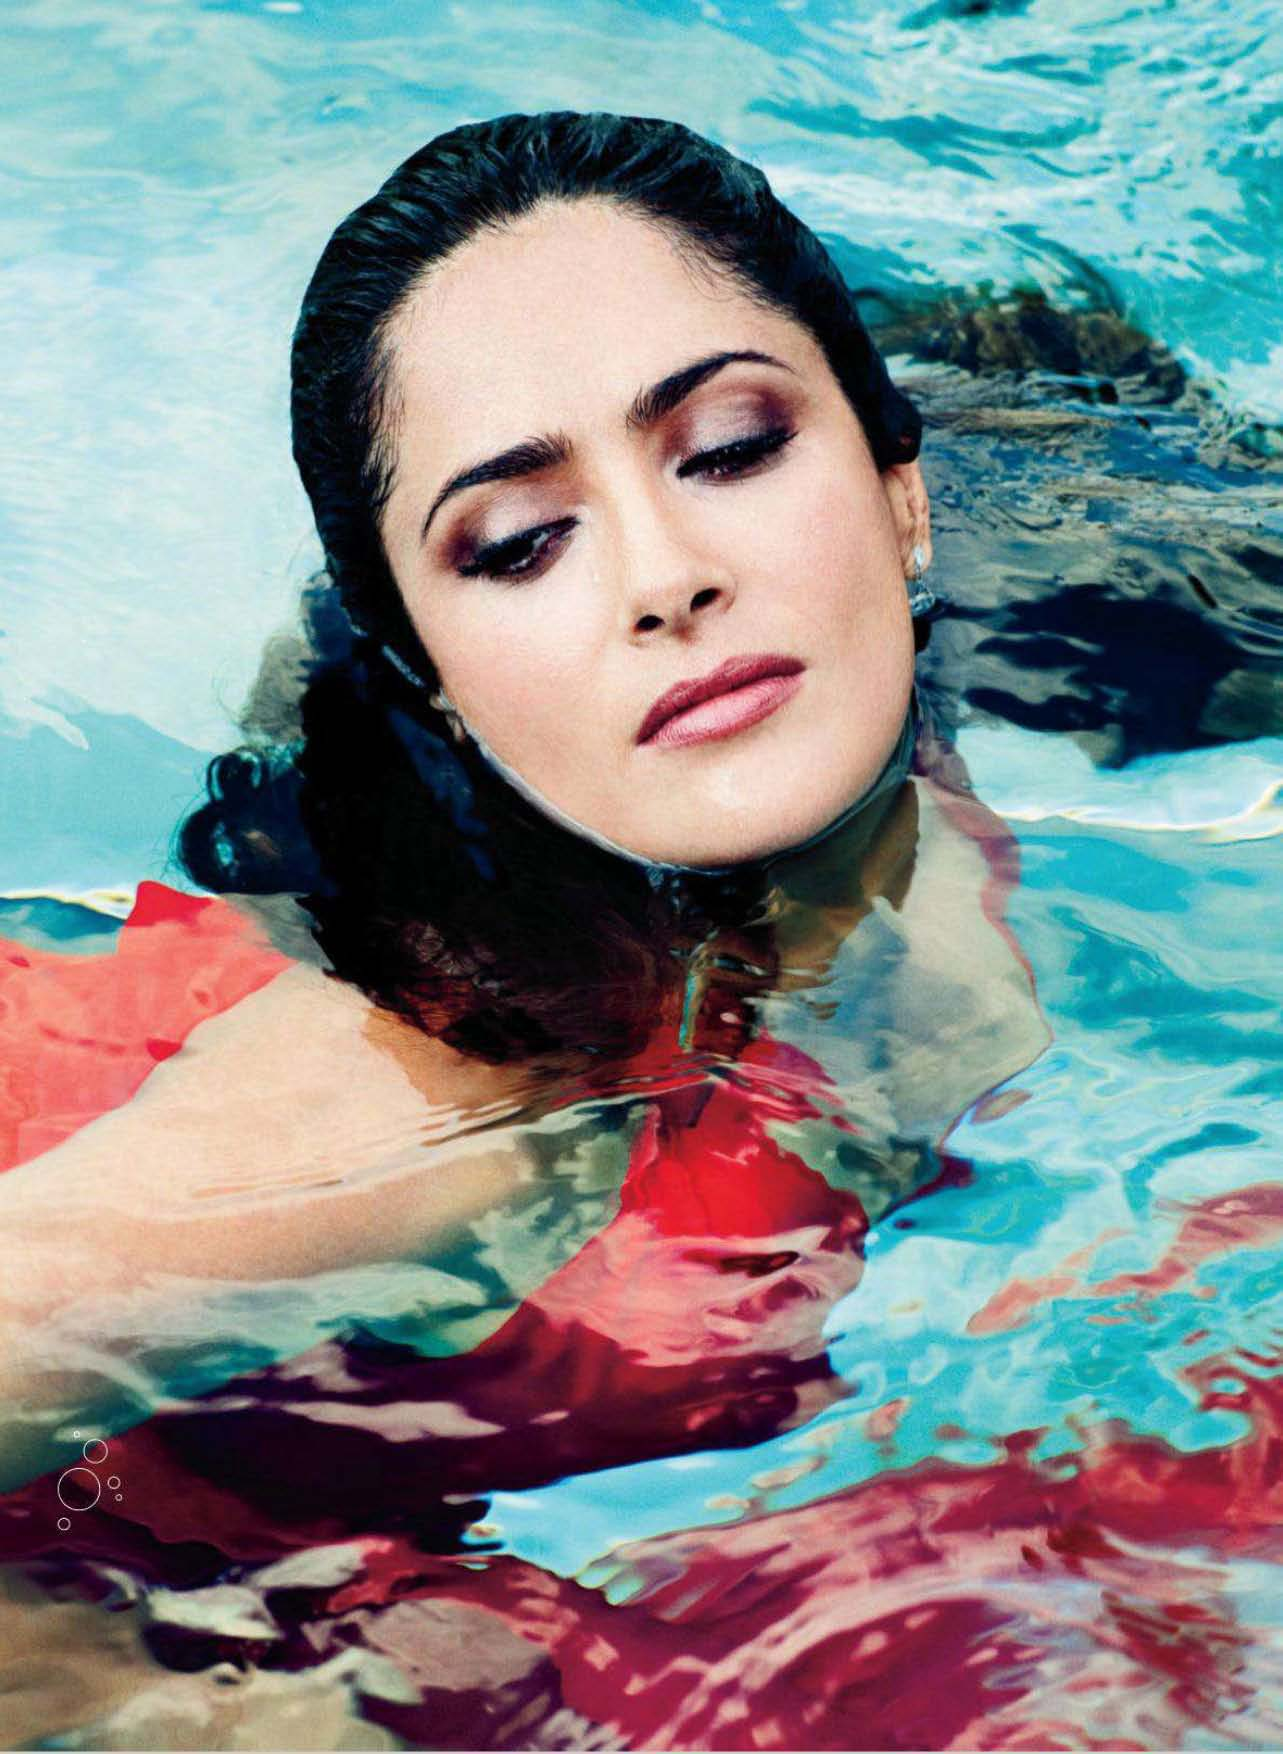 More Magazine November 2014 Issue: Salma Hayek Cleavage For More-03